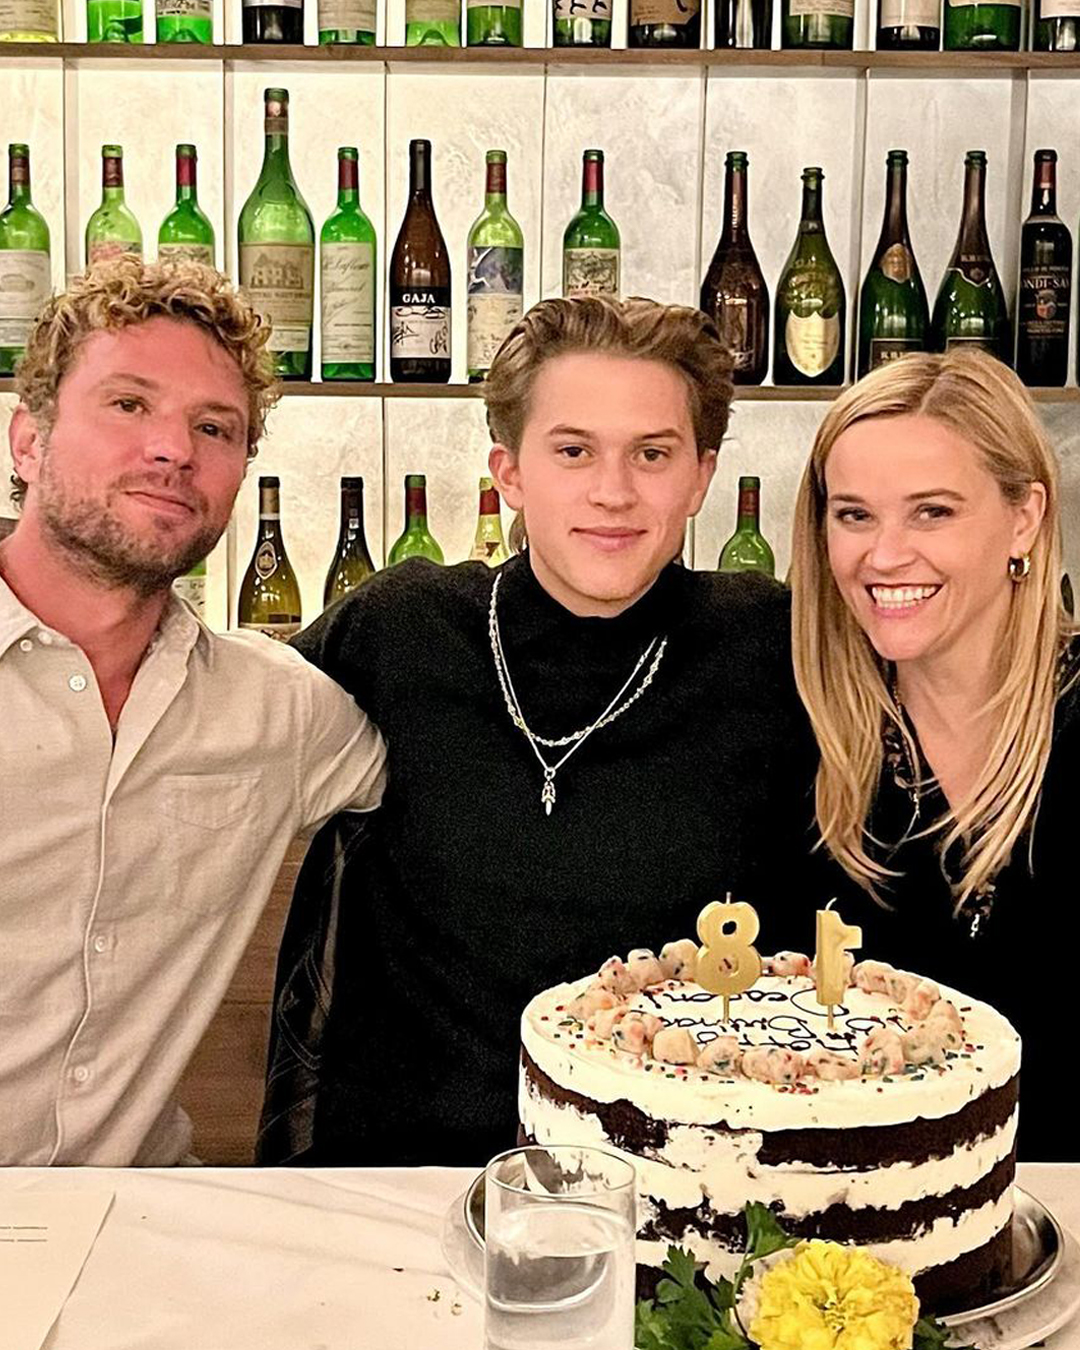 Ryan Phillippe Reese Witherspoon Instagram